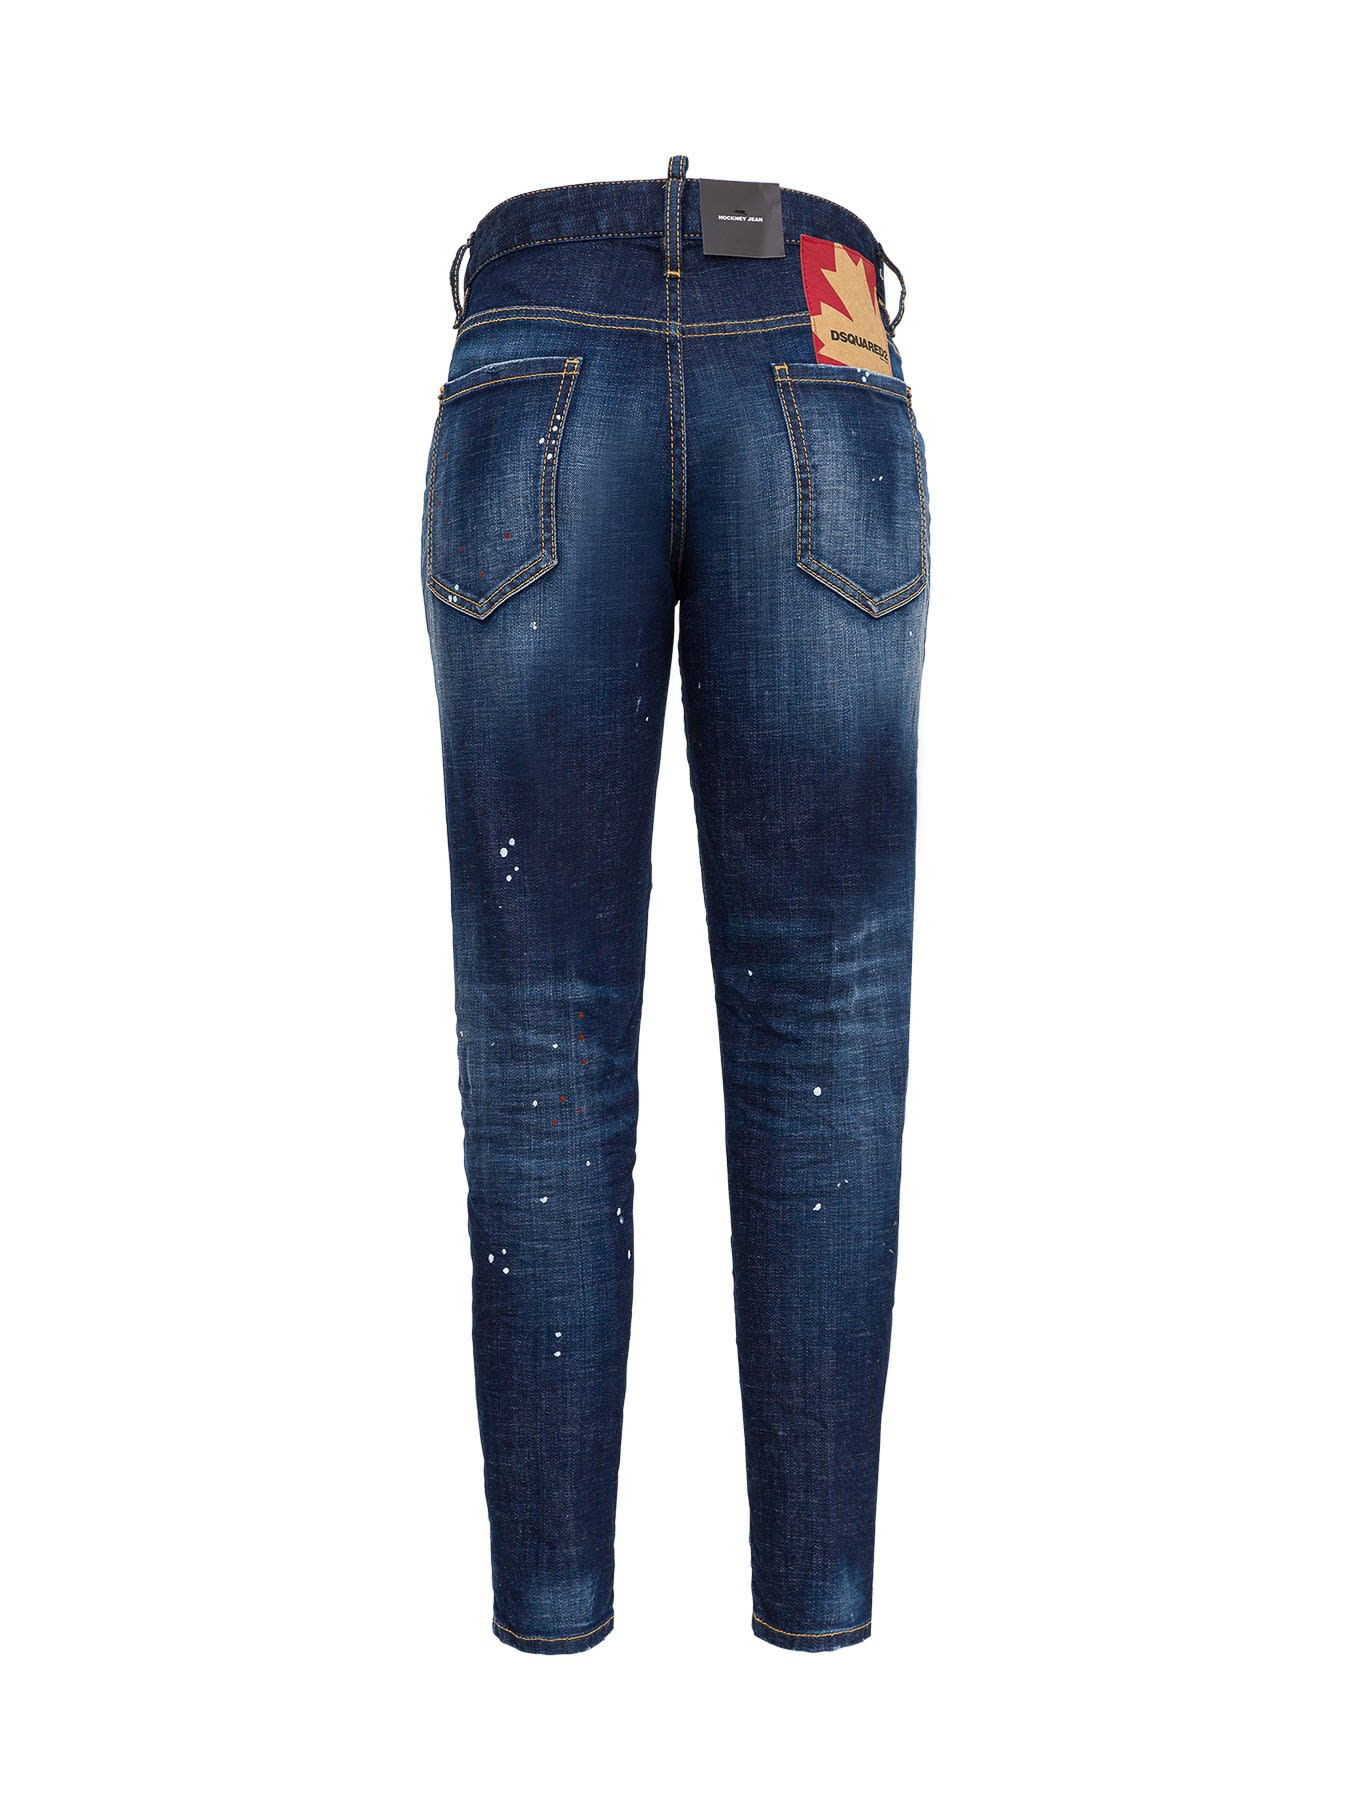 Cheap And Nice Dsquared2 Jeans